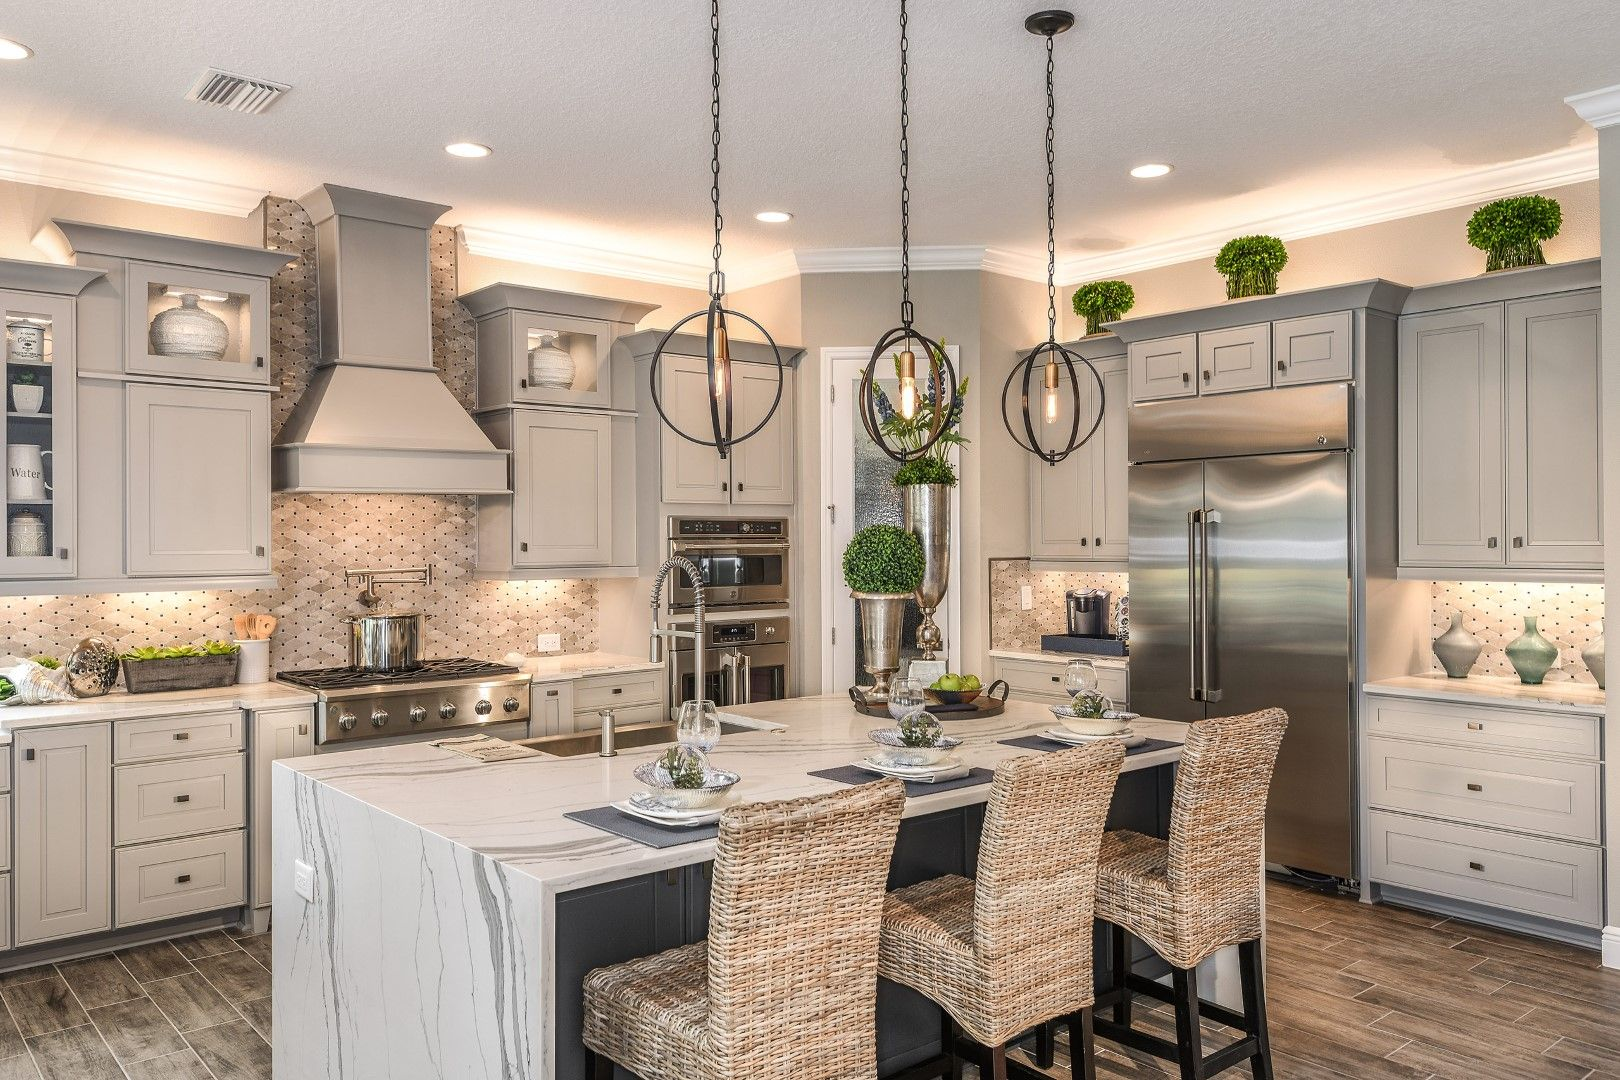 Kitchen featured in the Madeira III By Homes by WestBay in Tampa-St. Petersburg, FL